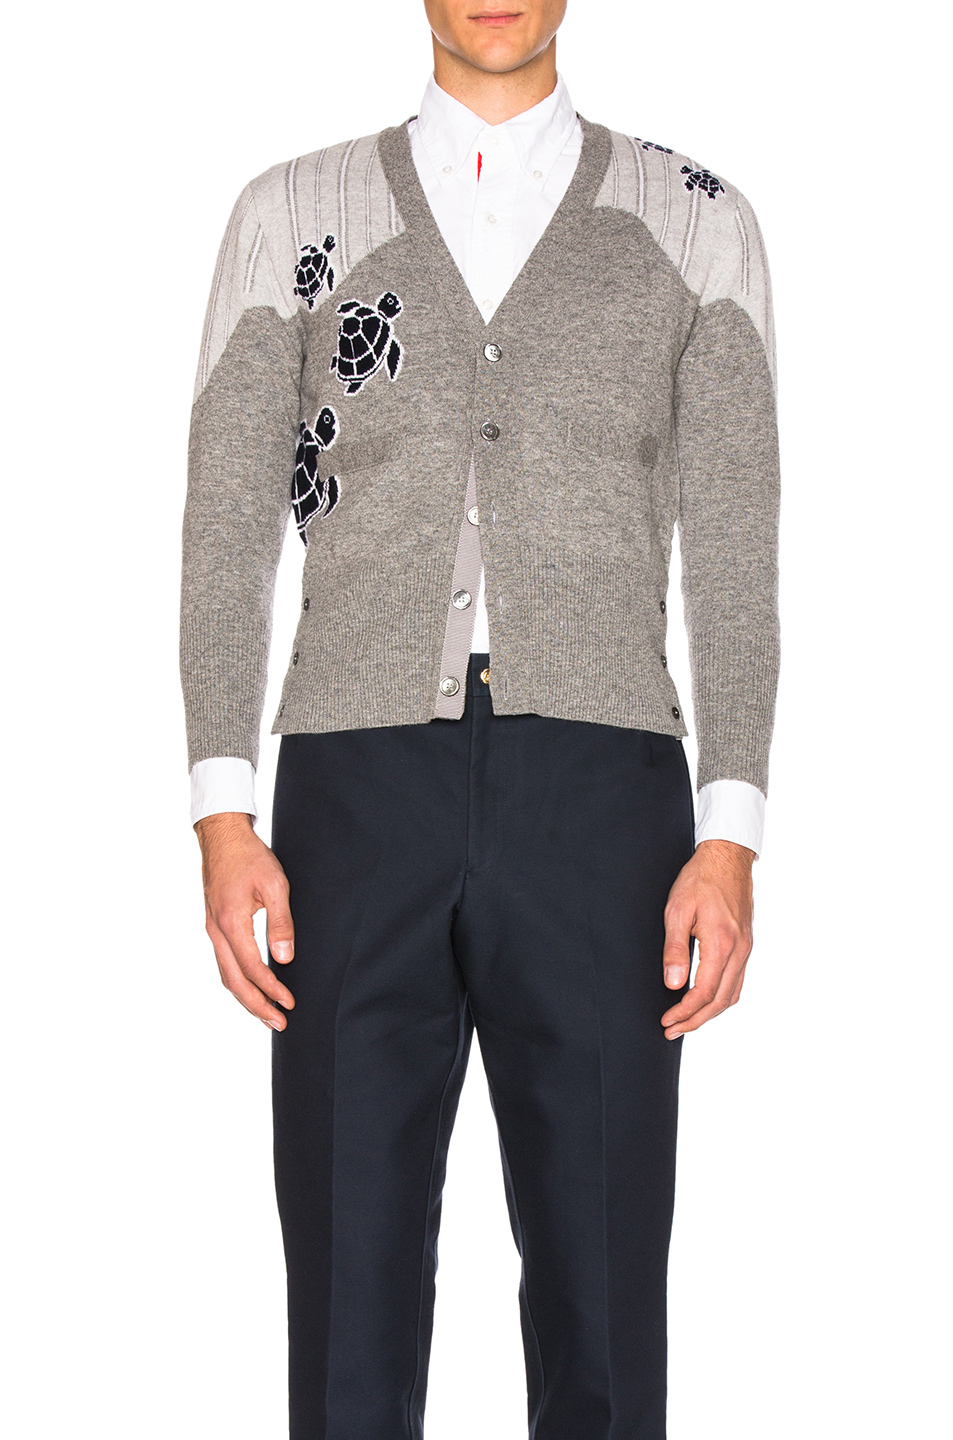 Thom Browne Sea Animal Cashmere Intarsia Cardigan in Gray,Animal Print